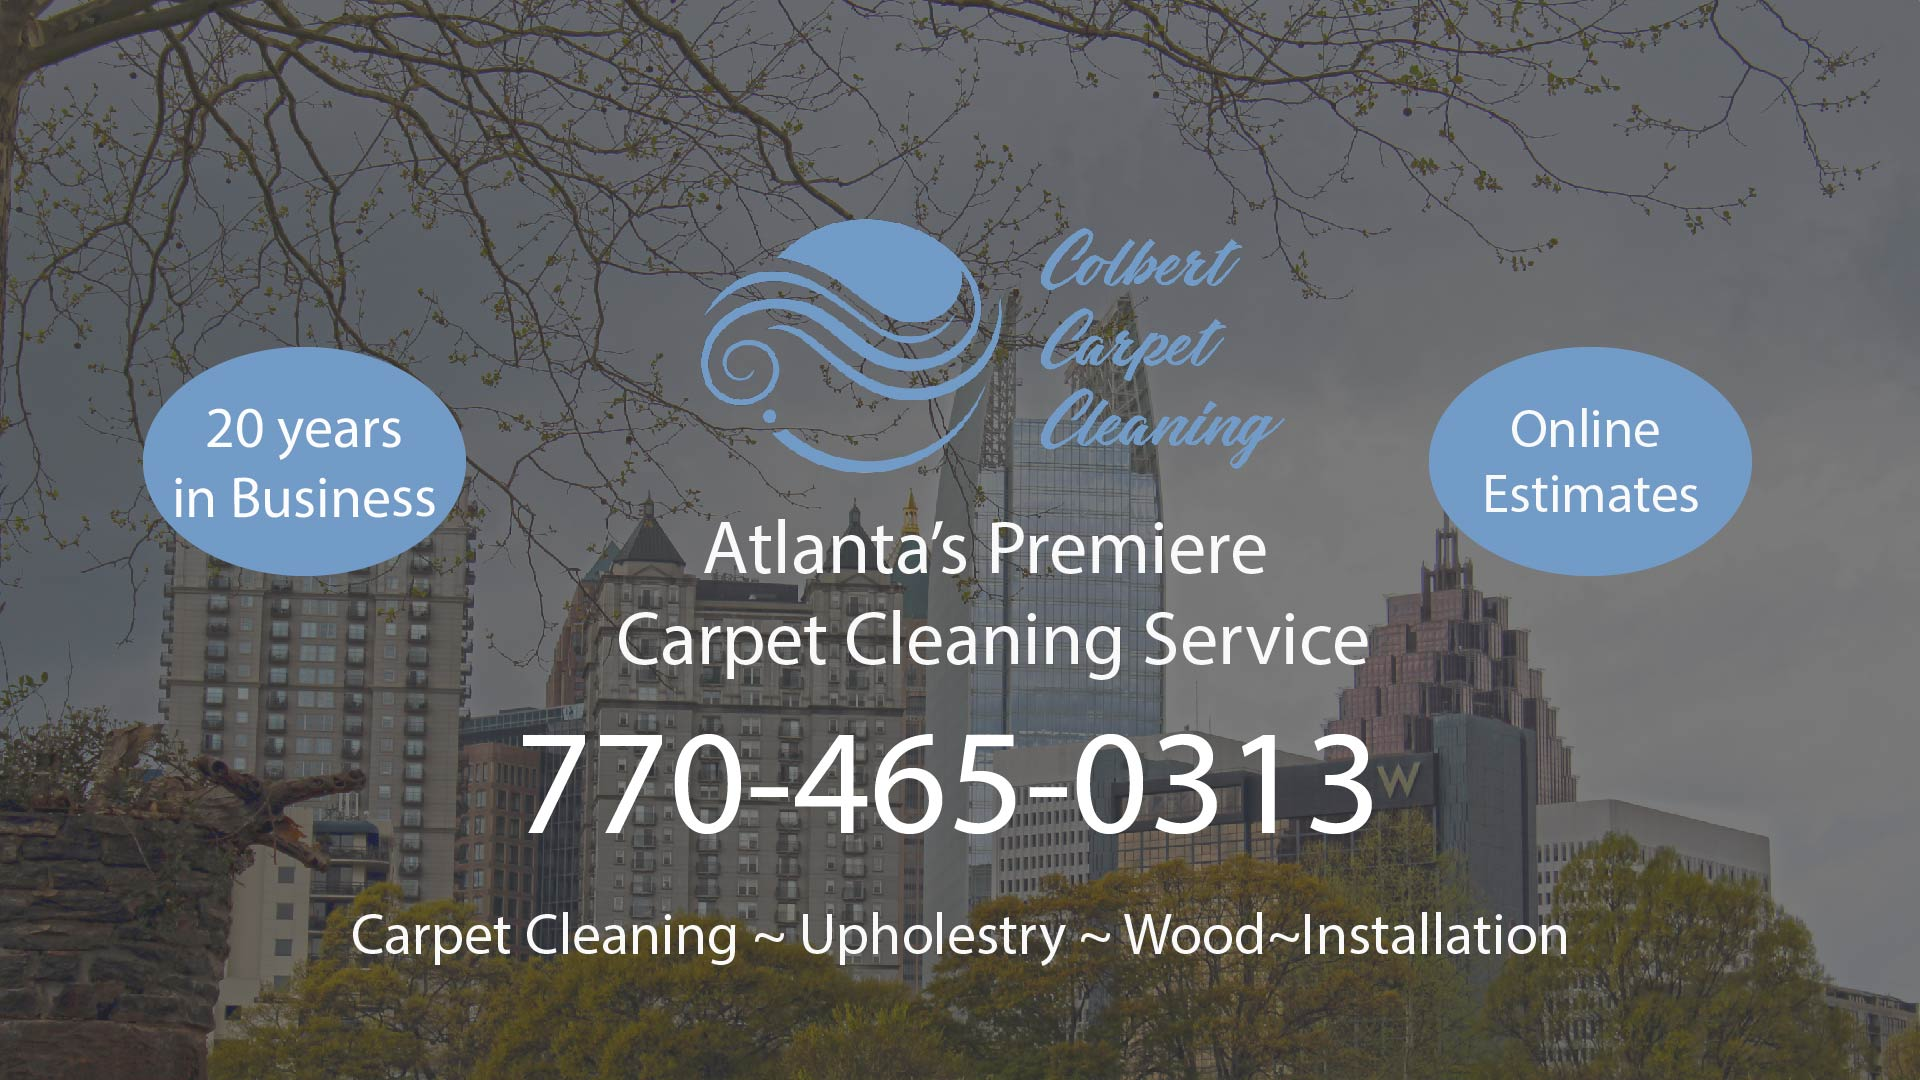 Home Colbert Carpet Cleaning